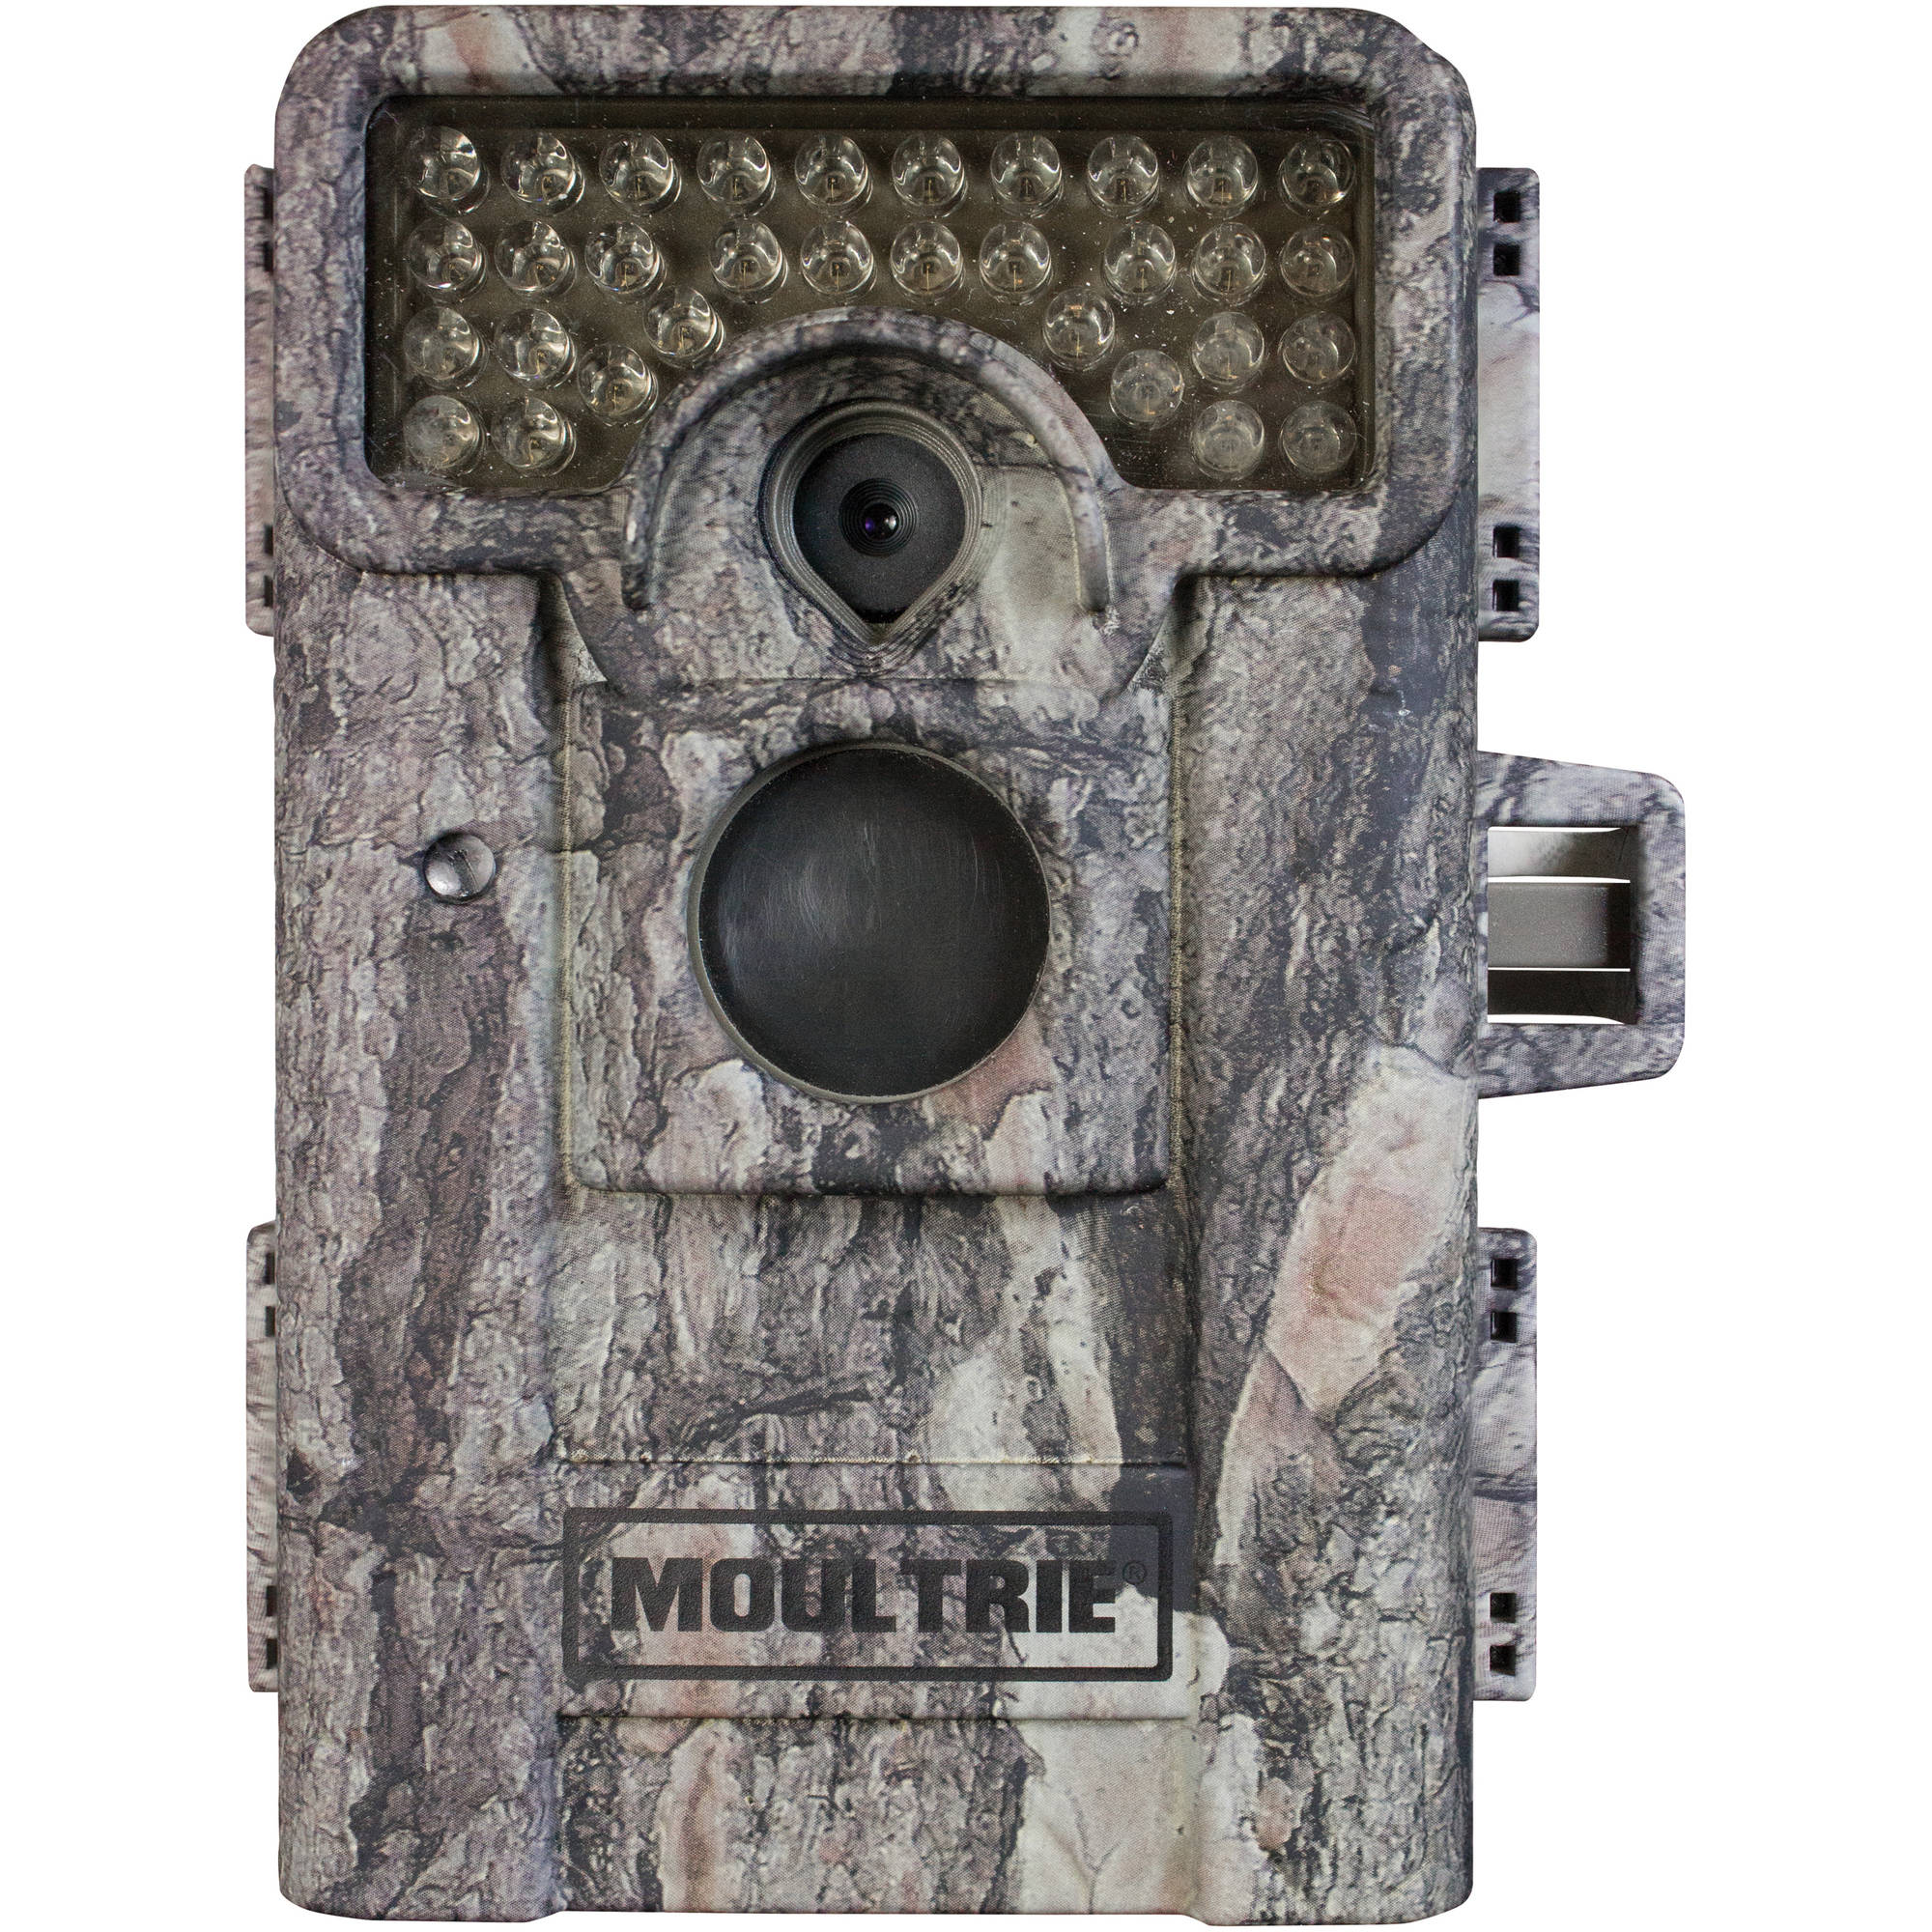 Moultrie D-900i 10MP No Glow, IR, HD Video with Sound & Color Screen